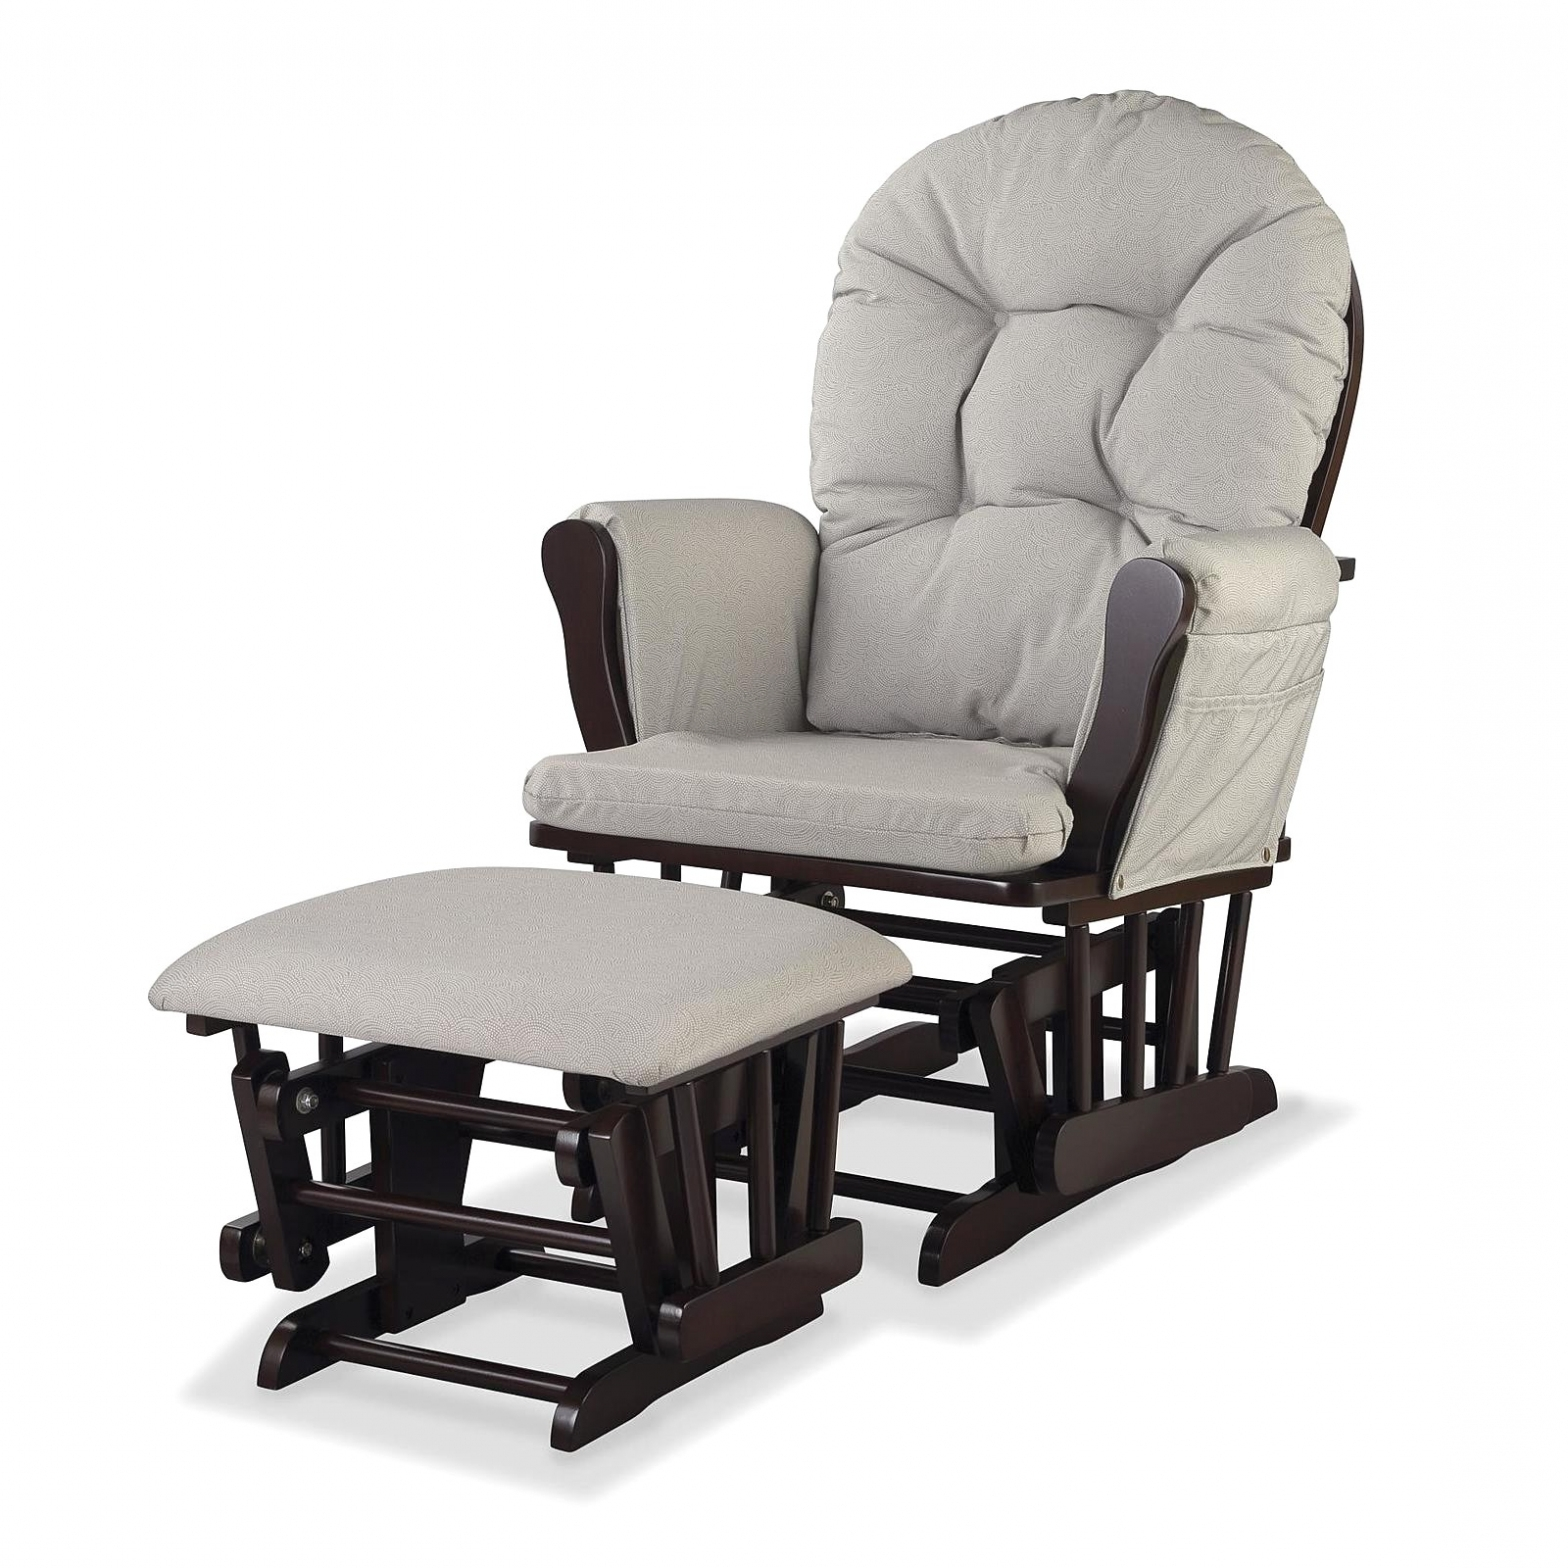 Latest Rocking Chairs At Target Inside Furniture: Nursery Rocking Chair With Ottoman Glider Baby Rocker (View 4 of 15)